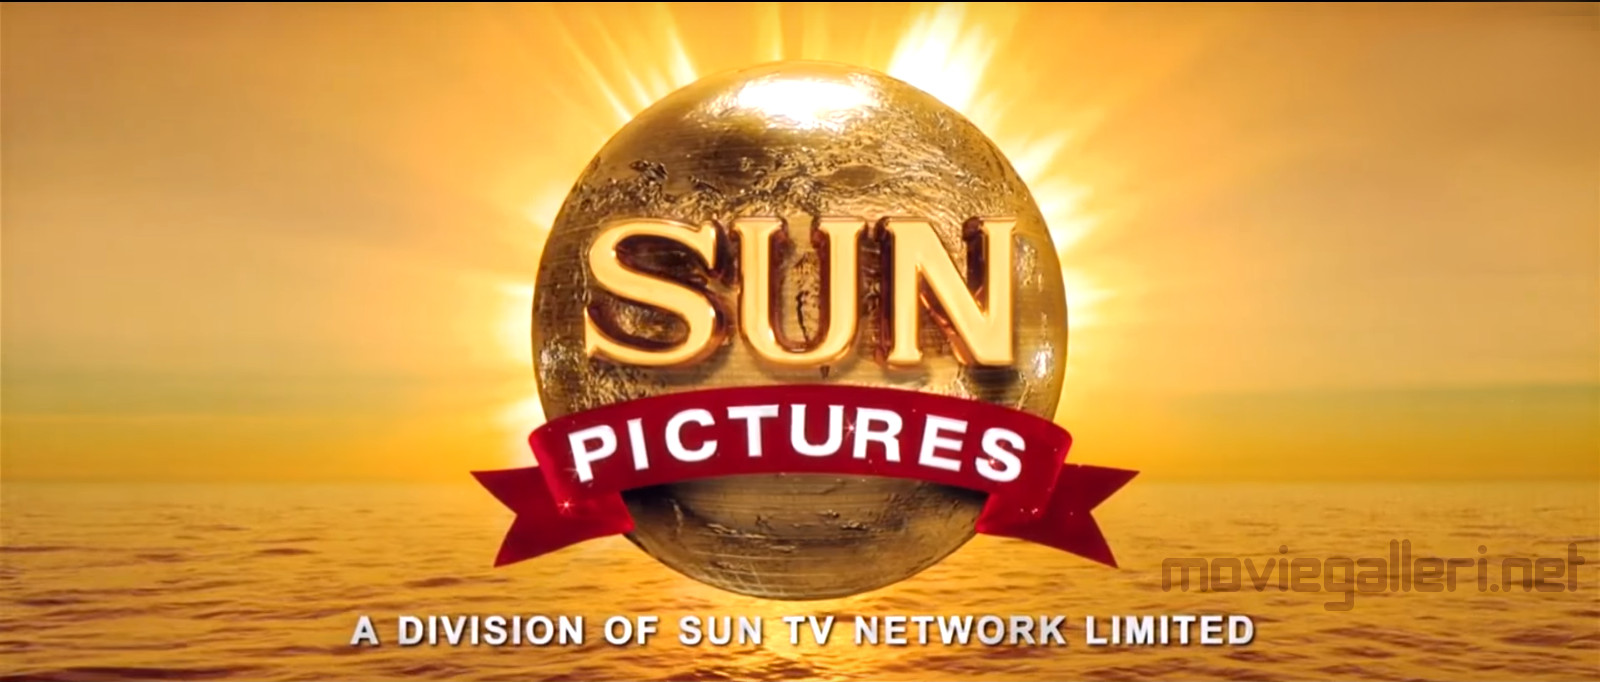 sun pictures production tamil movie company logo